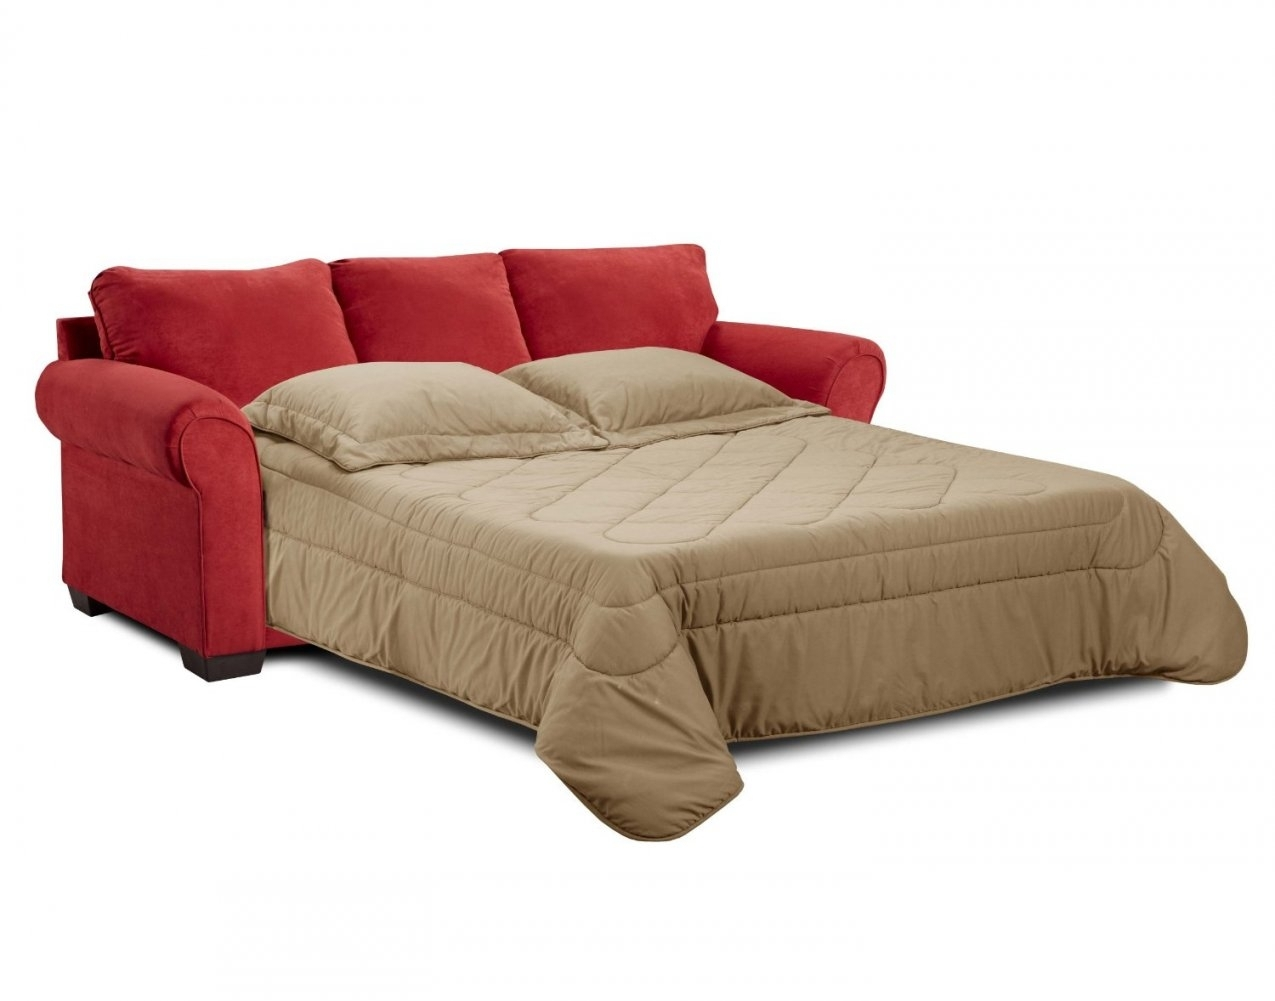 Queen Size Sleeper Sofa 98 On Sofa Room Ideas With Queen Intended Throughout Queen Size Sofas (View 5 of 10)